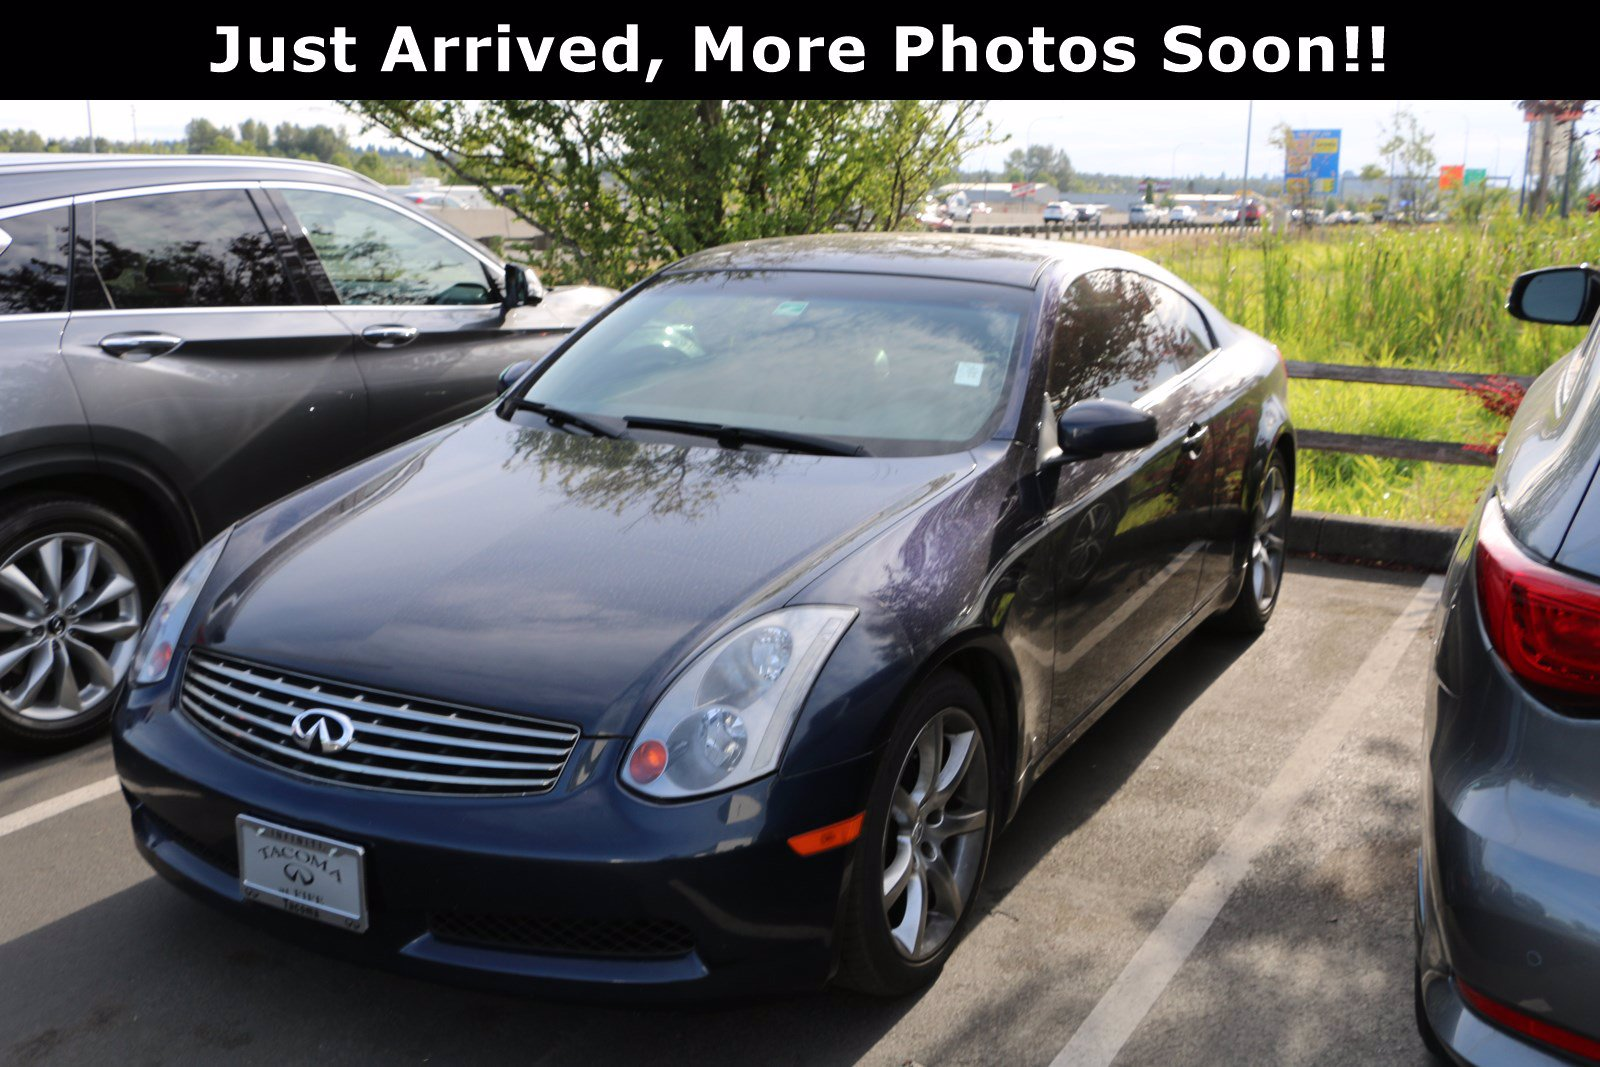 Pre-Owned 2004 INFINITI G35 Coupe with Leather